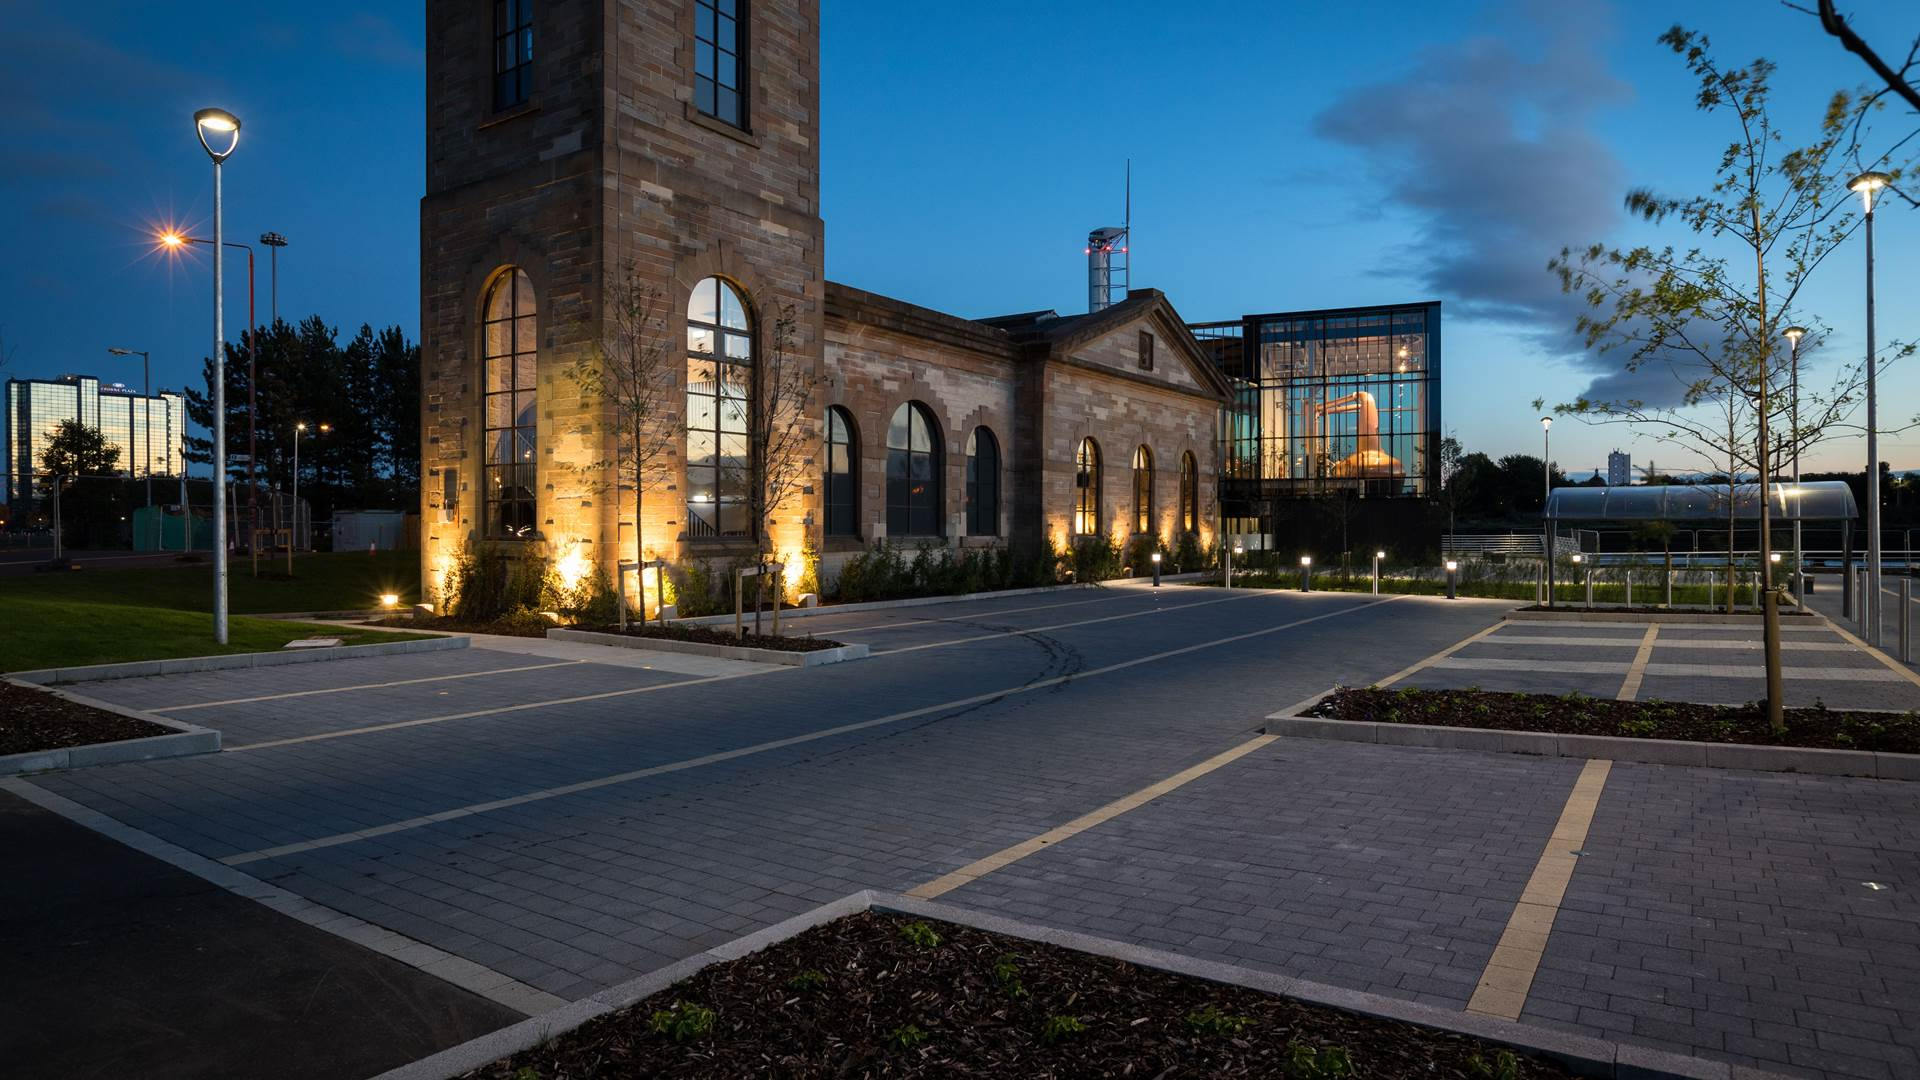 Car park space available at The Clydeside Distillery